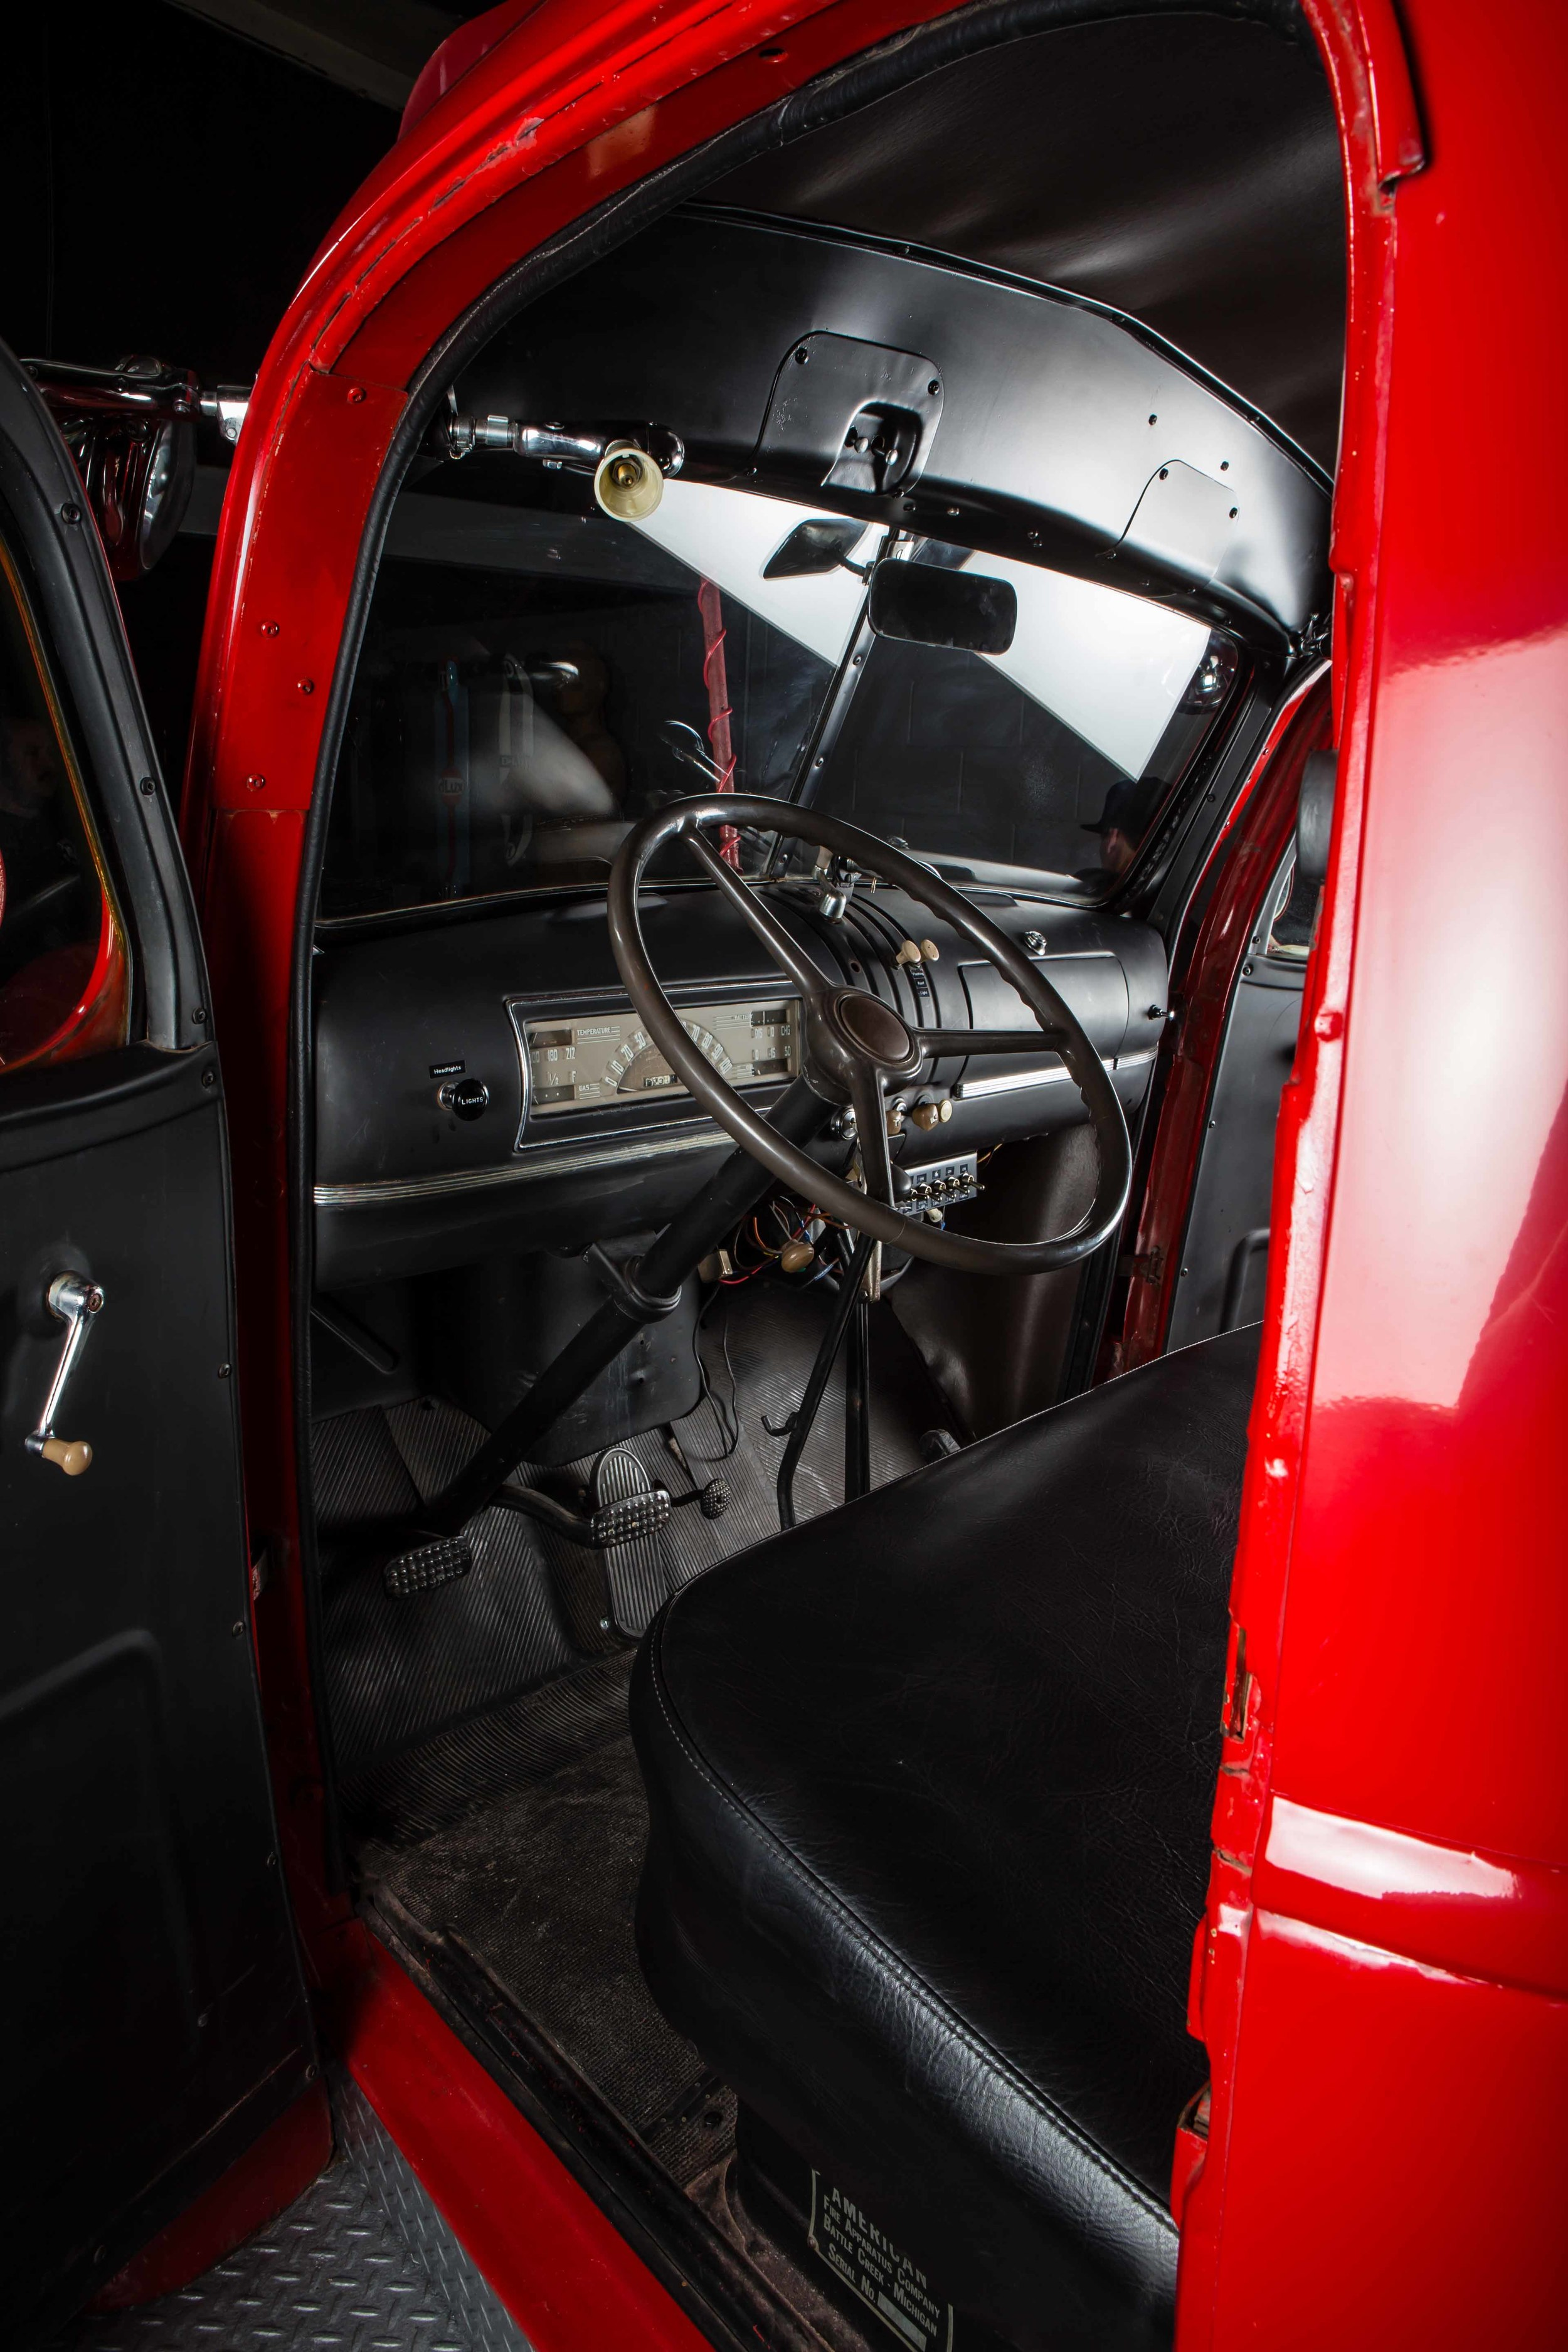 Anaheim Rod and Custom Fire Truck Project-19.jpg